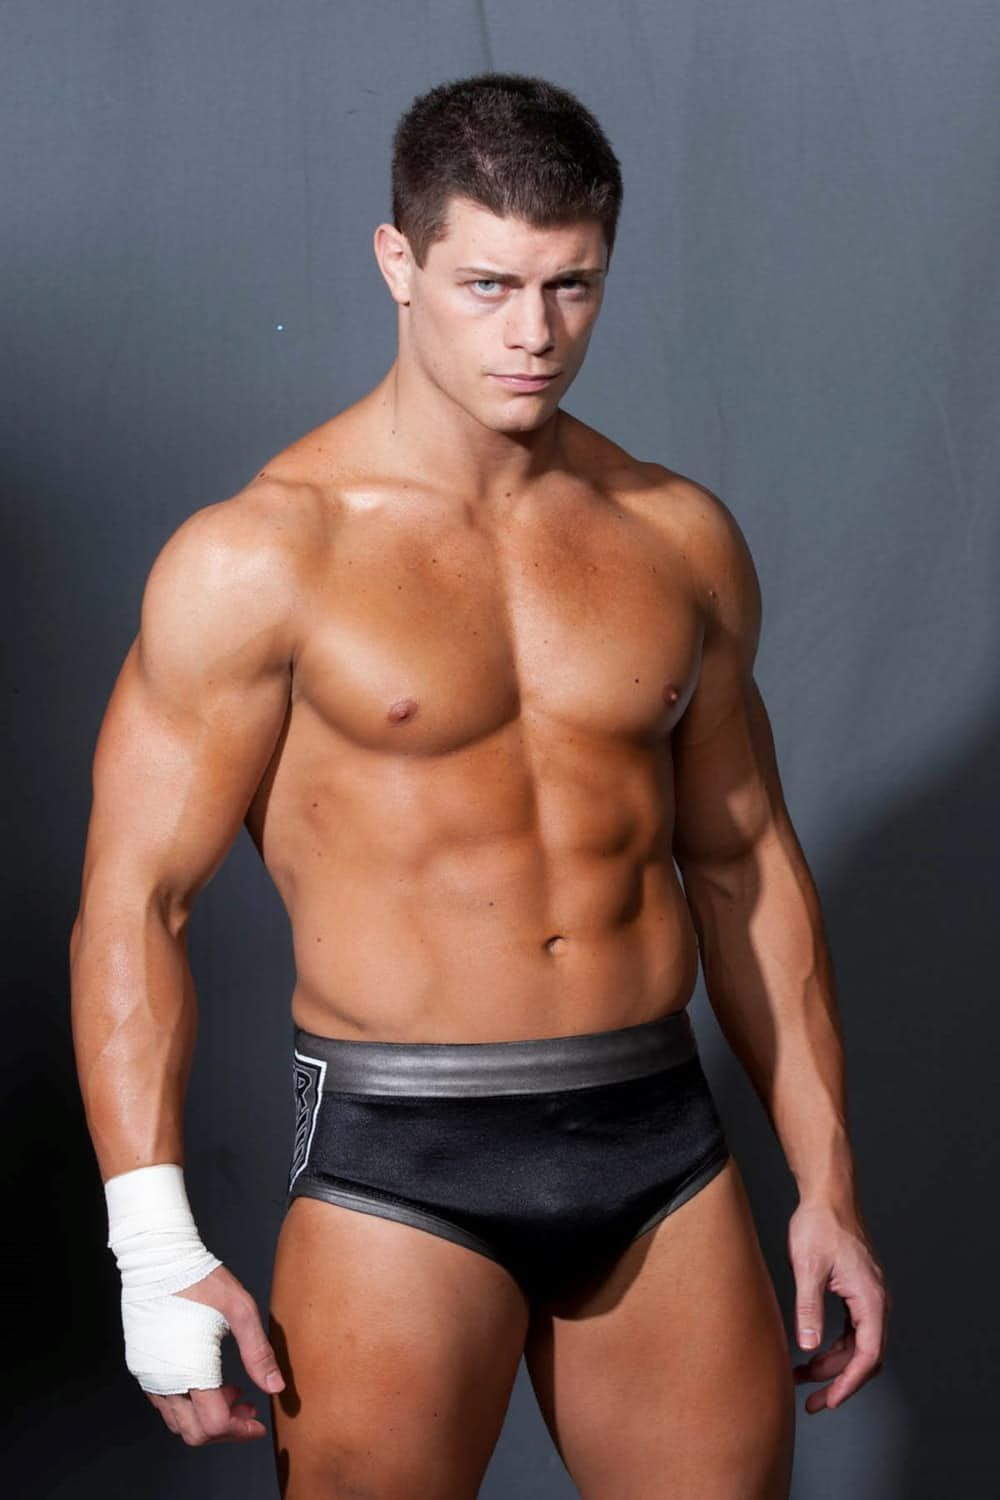 Pin by Jonathan Cross on Wrestling (With images) Cody rhodes Wrestling wwe Wwe